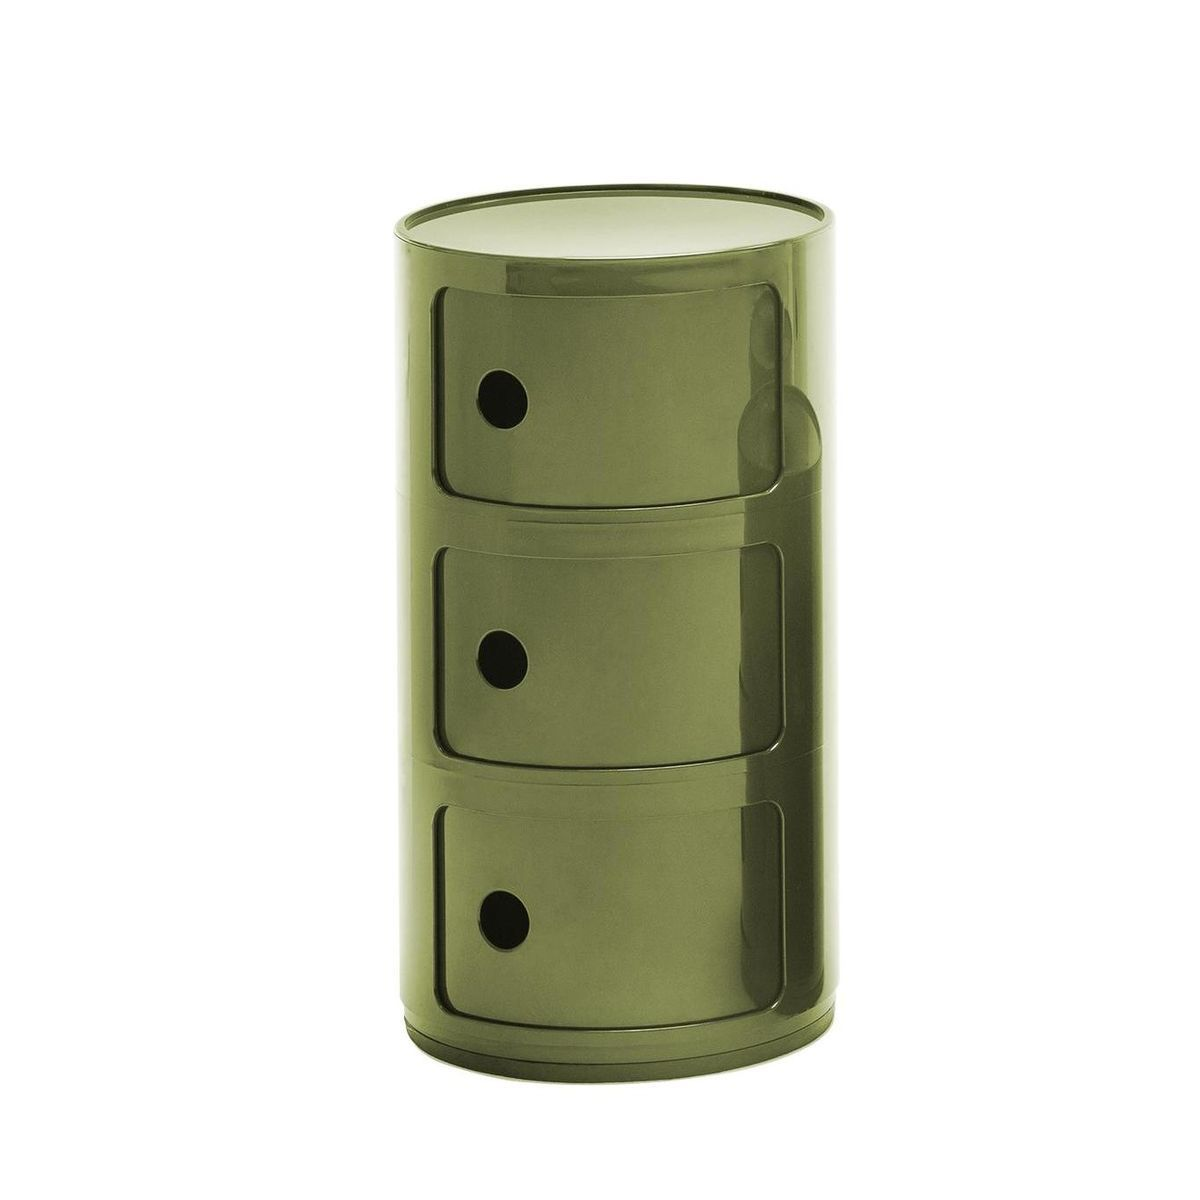 componibili  container  kartell  ambientedirectcom - kartell  componibili  container  greenglossy